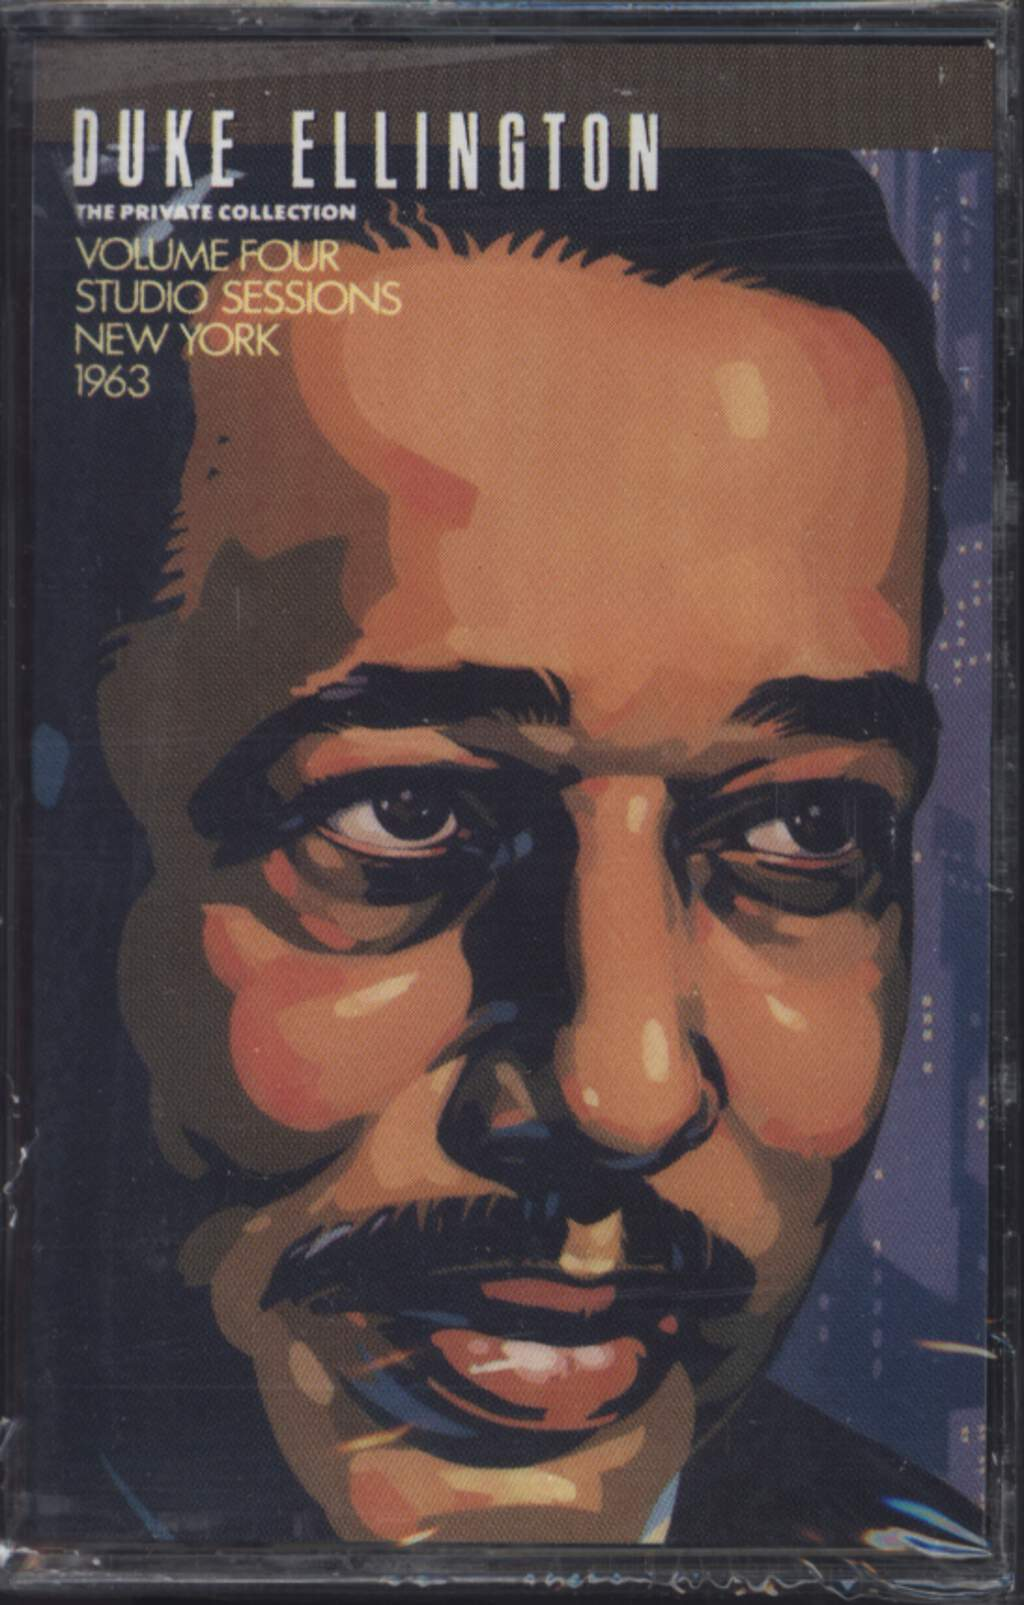 Duke Ellington: The Private Collection: Volume Four, Studio Sessions, New York 1963, Compact Cassette